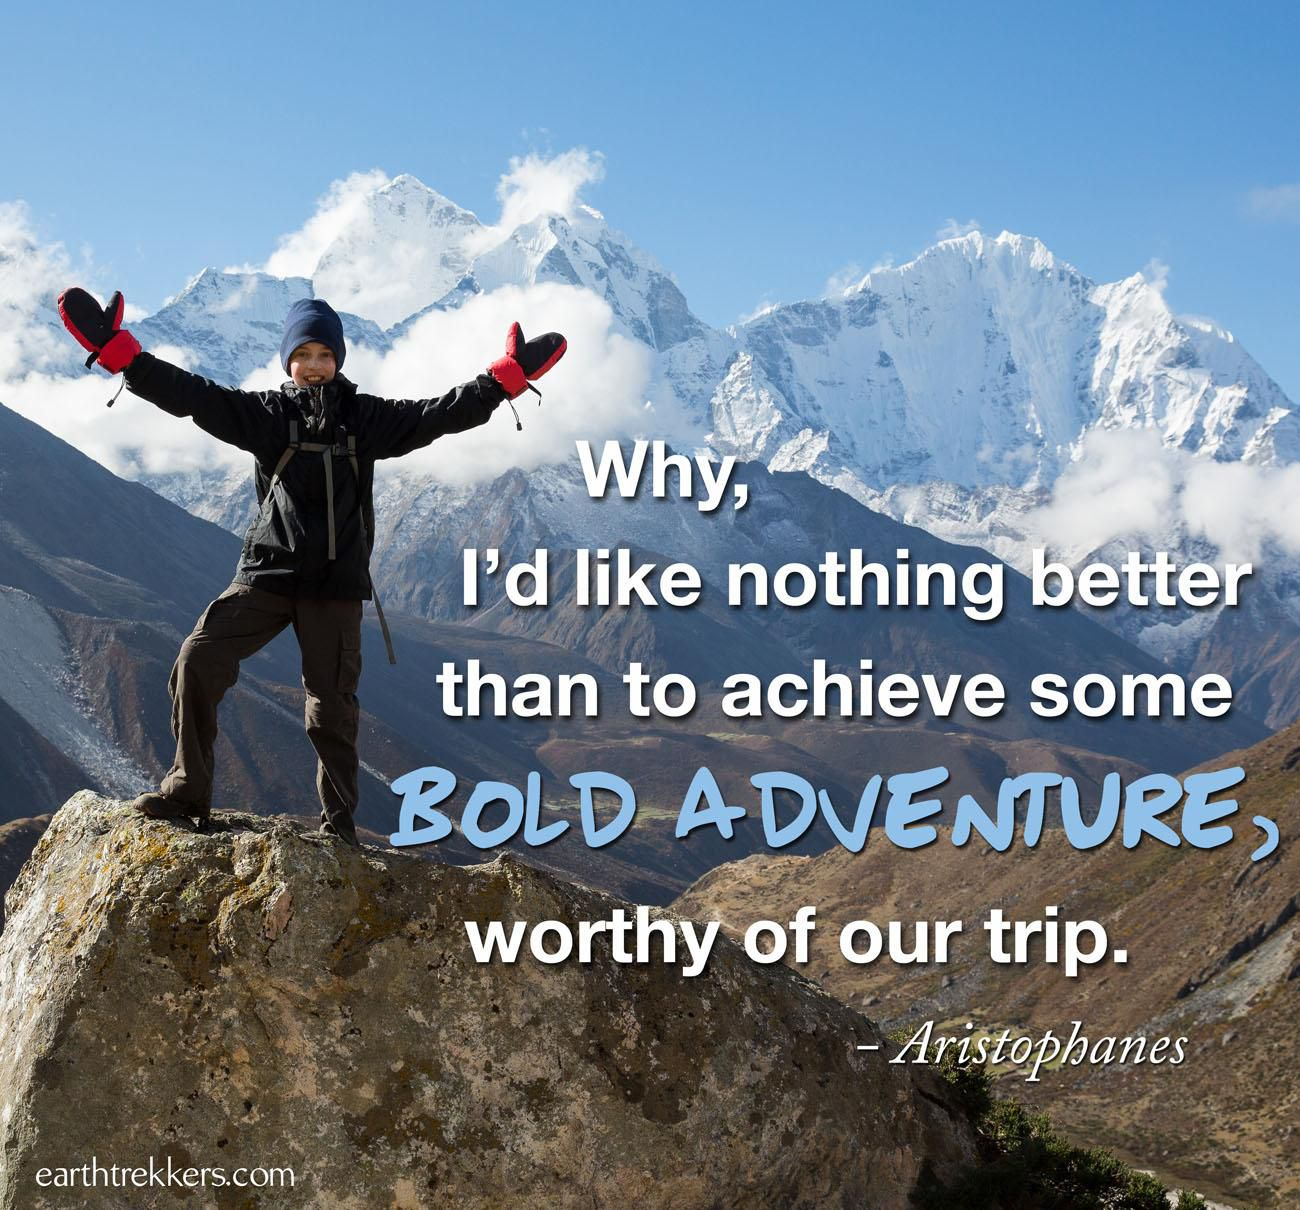 Adventure Travel: 60 Travel Quotes To Feed Your Wanderlust